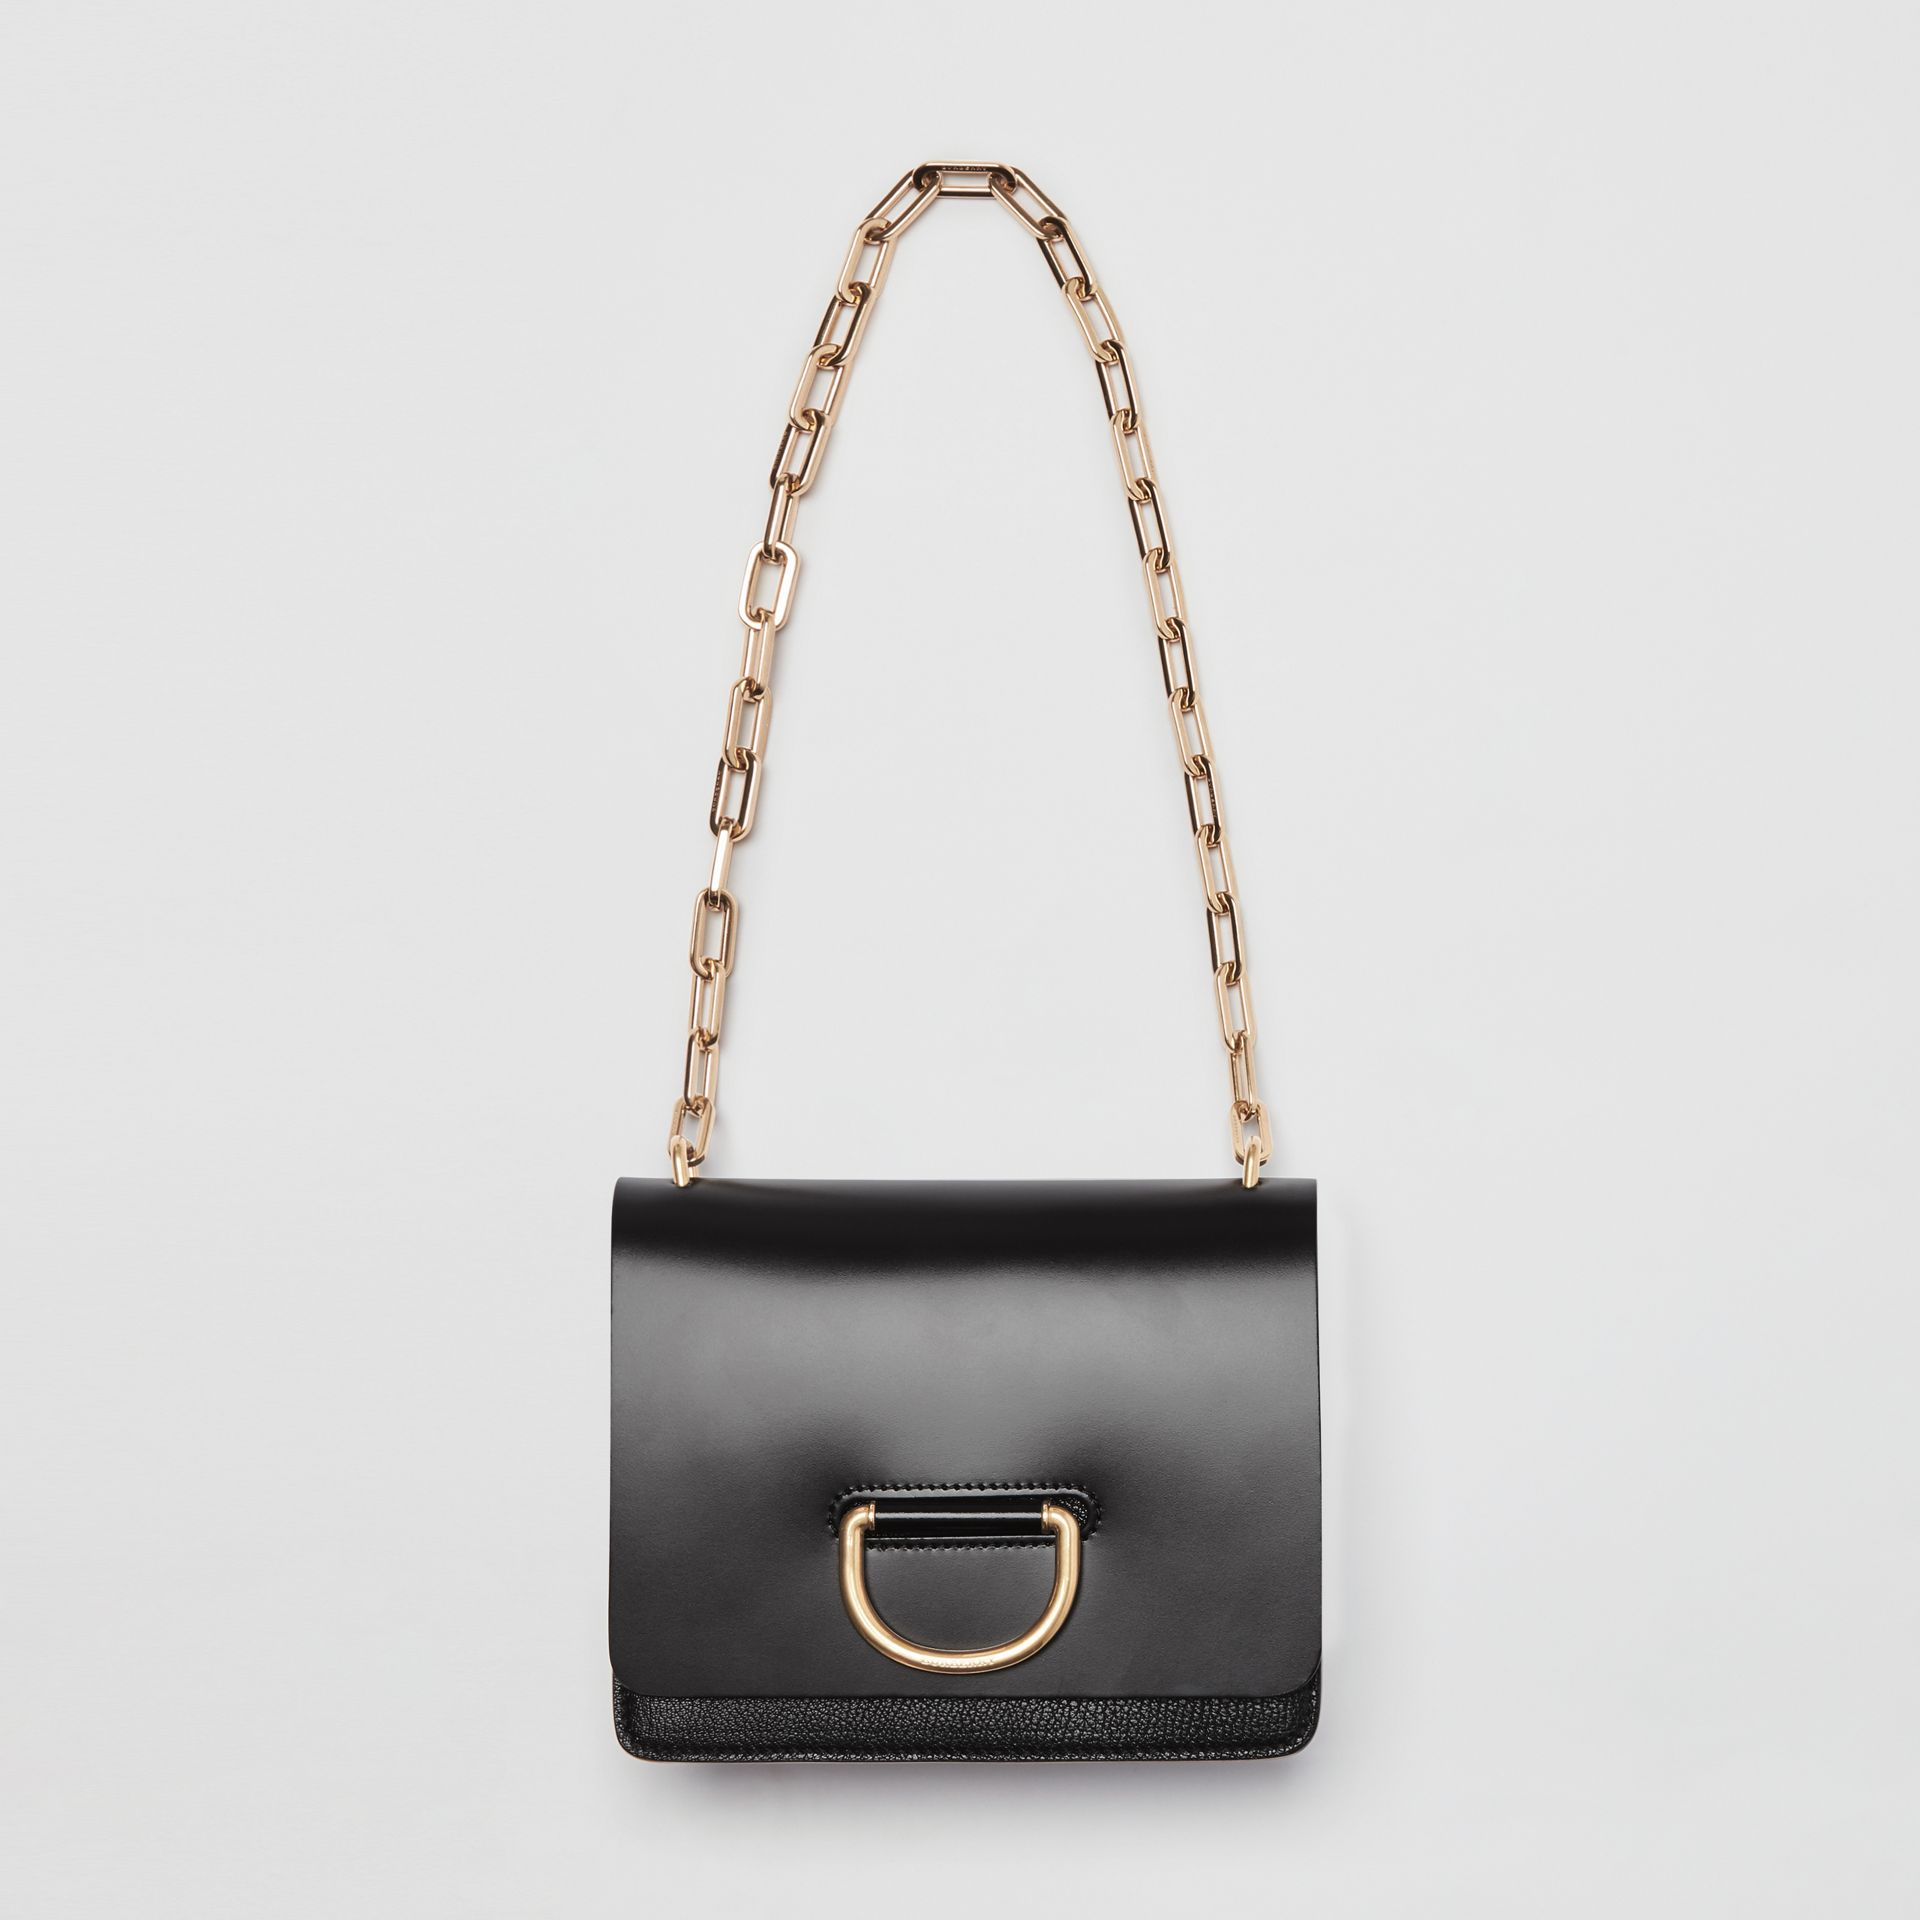 Petit sac The D-ring en cuir (Noir) - Femme | Burberry Canada - photo de la galerie 4